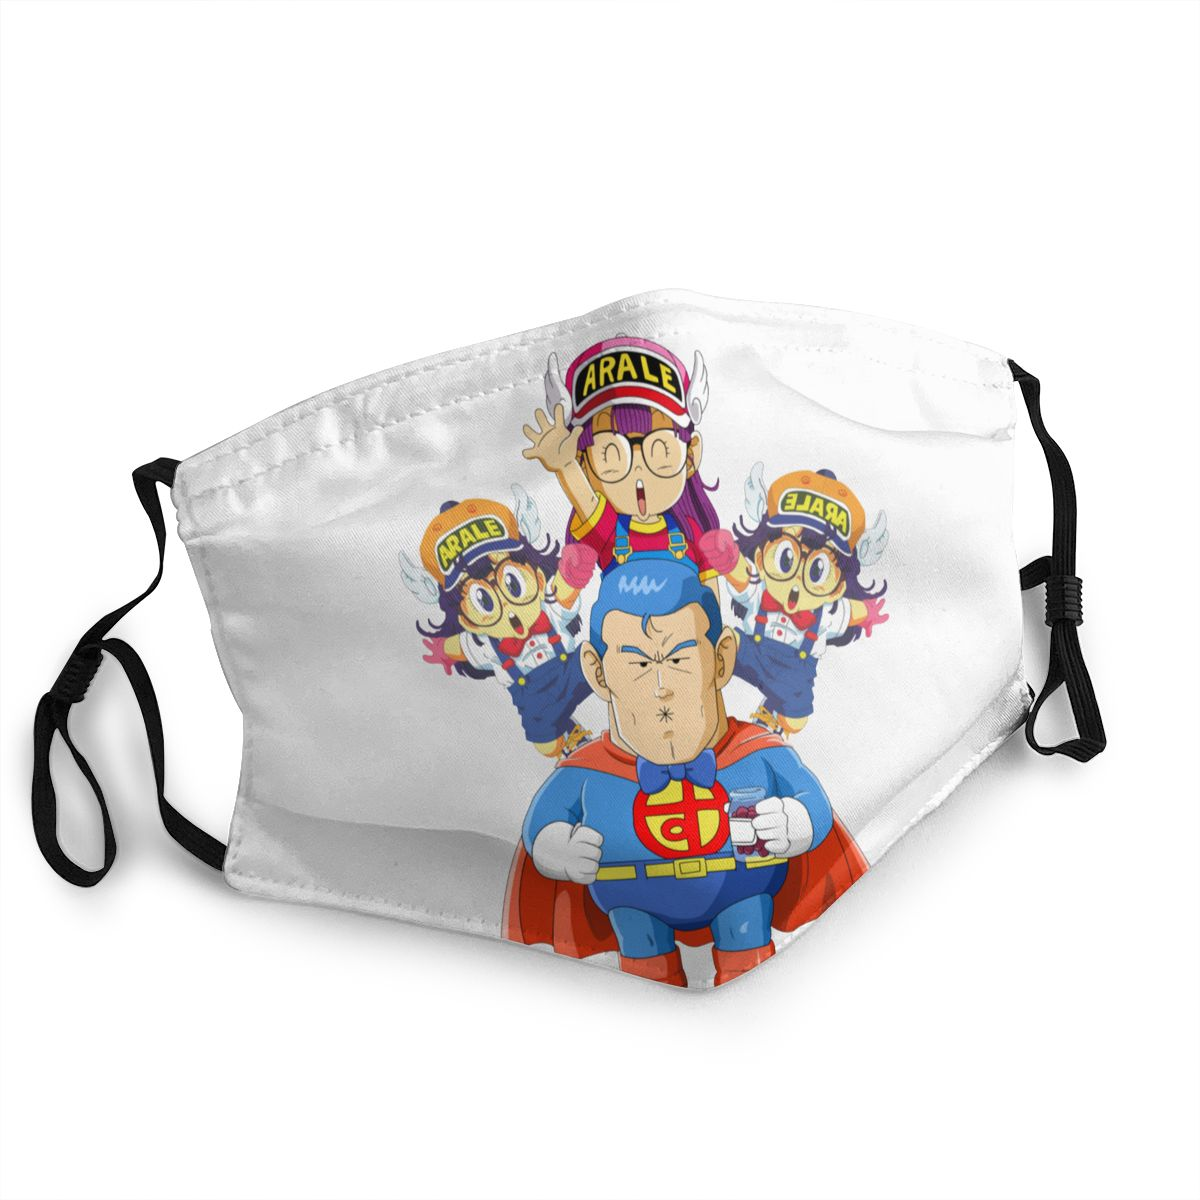 Dr. Slump And Arale Men Women Non-Disposable Face Mask Anti Haze Dustproof Mask Protection Cover Respirator Mouth Muffle